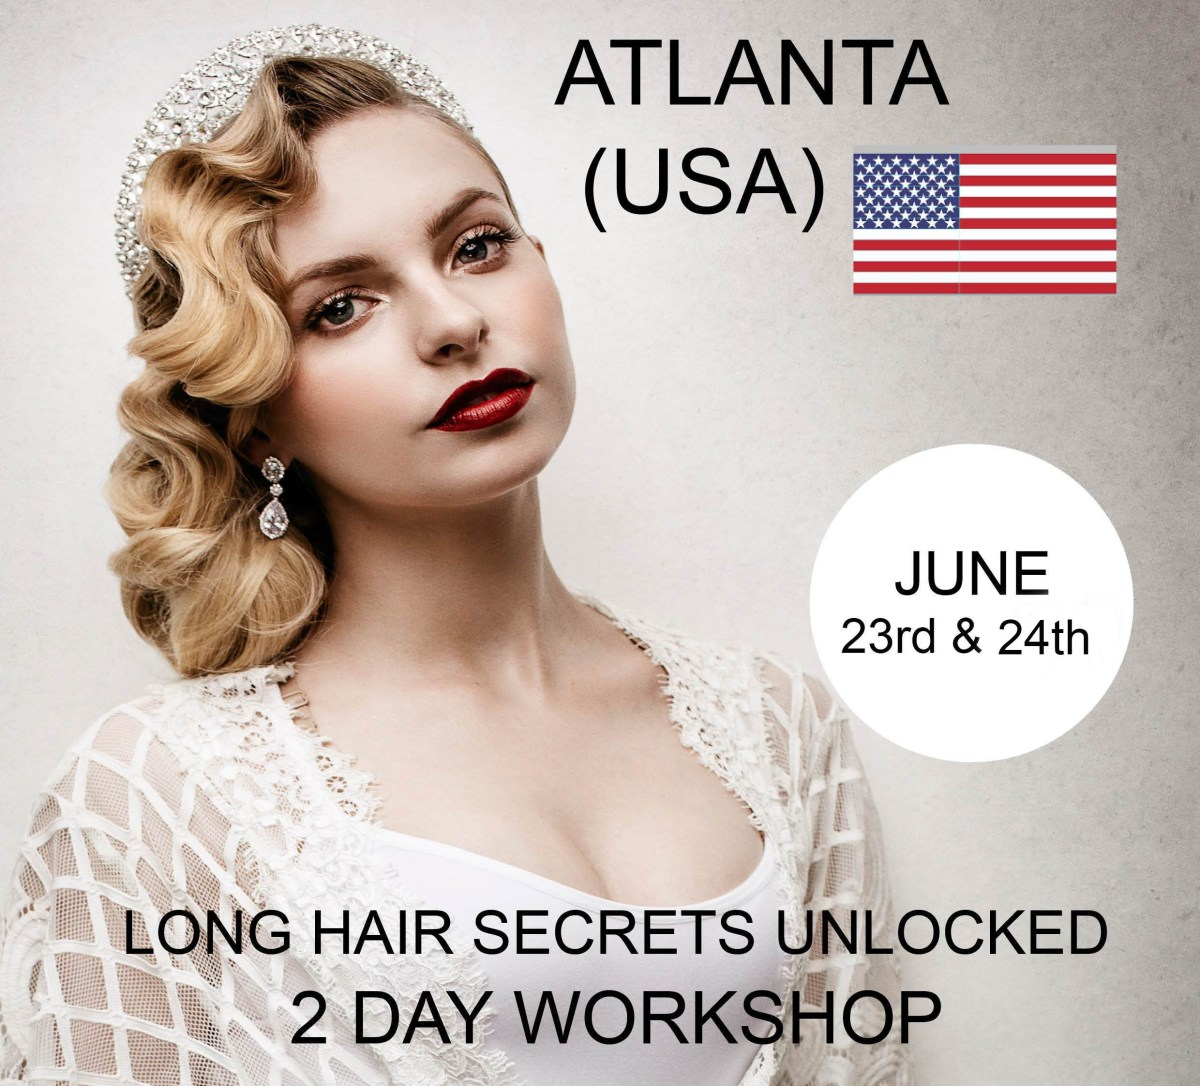 Stop struggling with long hair… - Lorna Evans, Long Hair Expert This workshop will develop skills in all aspects of Long Hair Styling, whether you are a Salon Stylist, Make-up artist or Freelancer. Learn how to create beautiful looks with ease and at a pace that will ensure that your Long hair styling days are stress free and enjoyable.